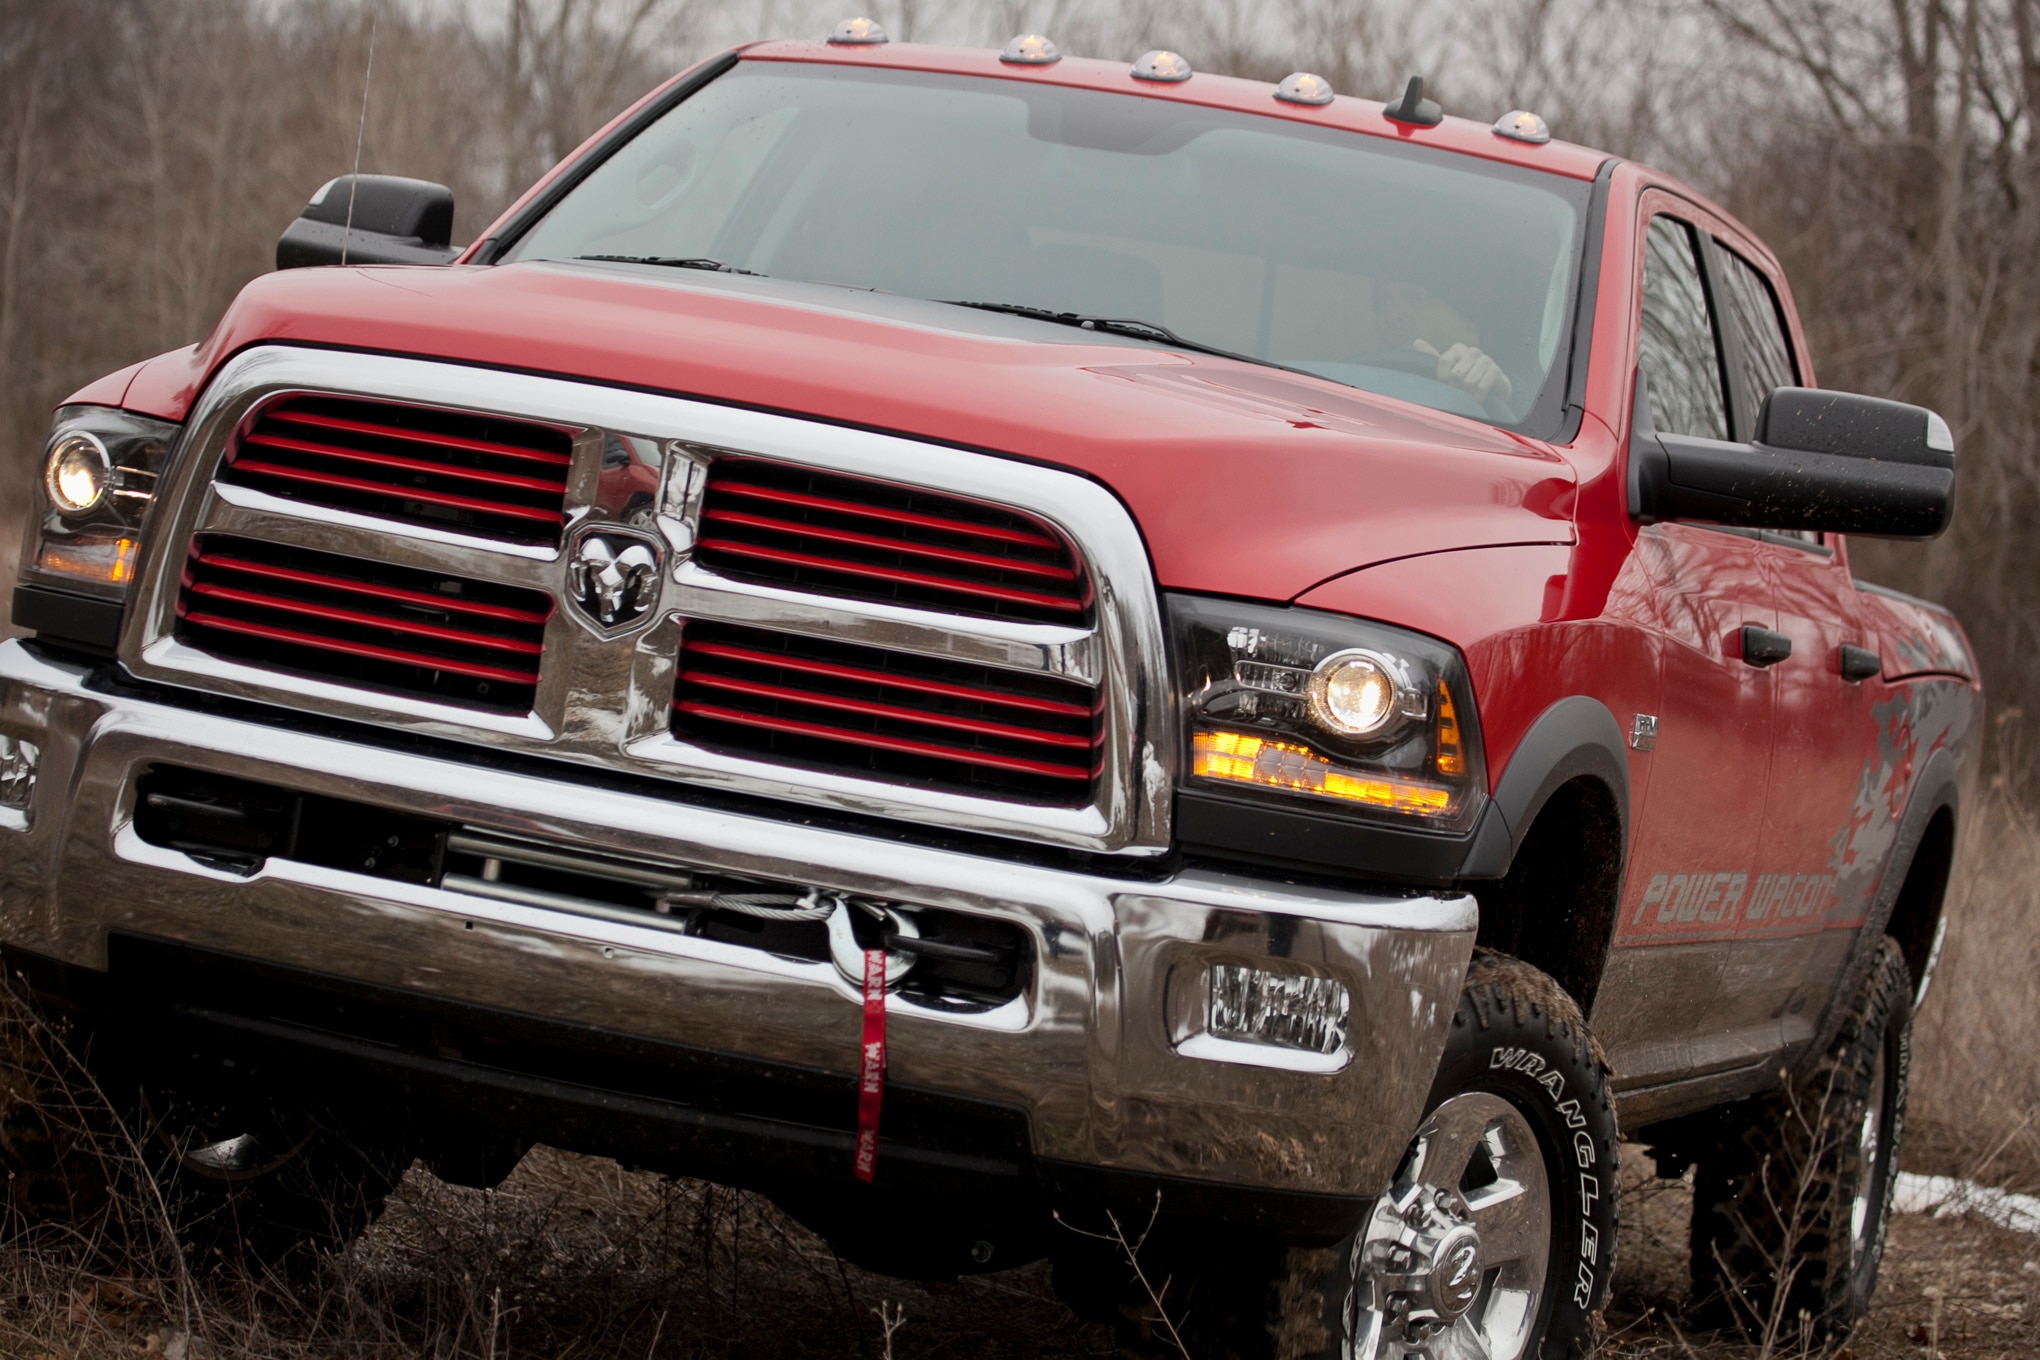 2014 Ram 2500 Power Wagon front end grille